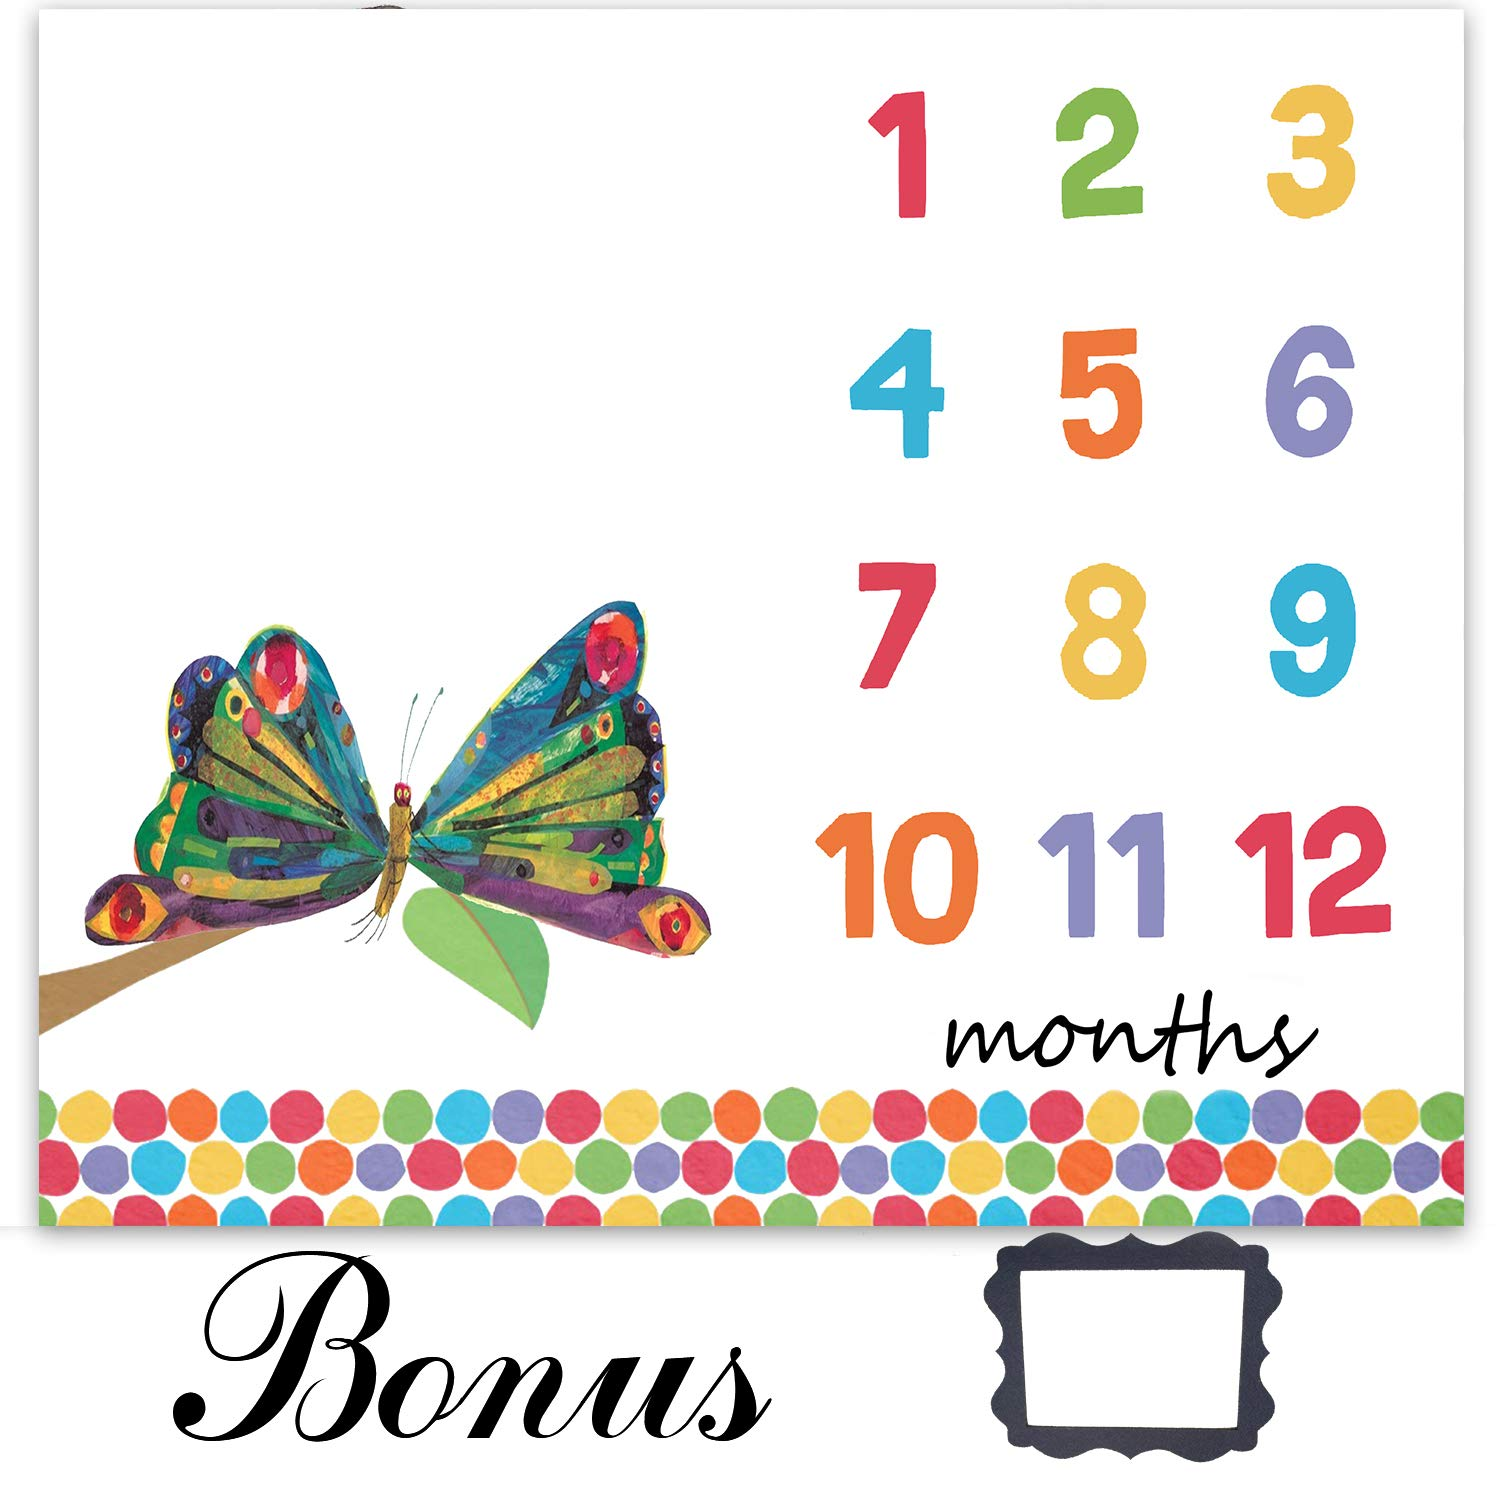 EARVO Butterfly Photography Blanket 47x40 inches Milestone Blanket The Very Hungry Caterpillar Dots Baby Growing Gifts for Baby Shower Swaddle & Throw for Infant & Babies EADS475